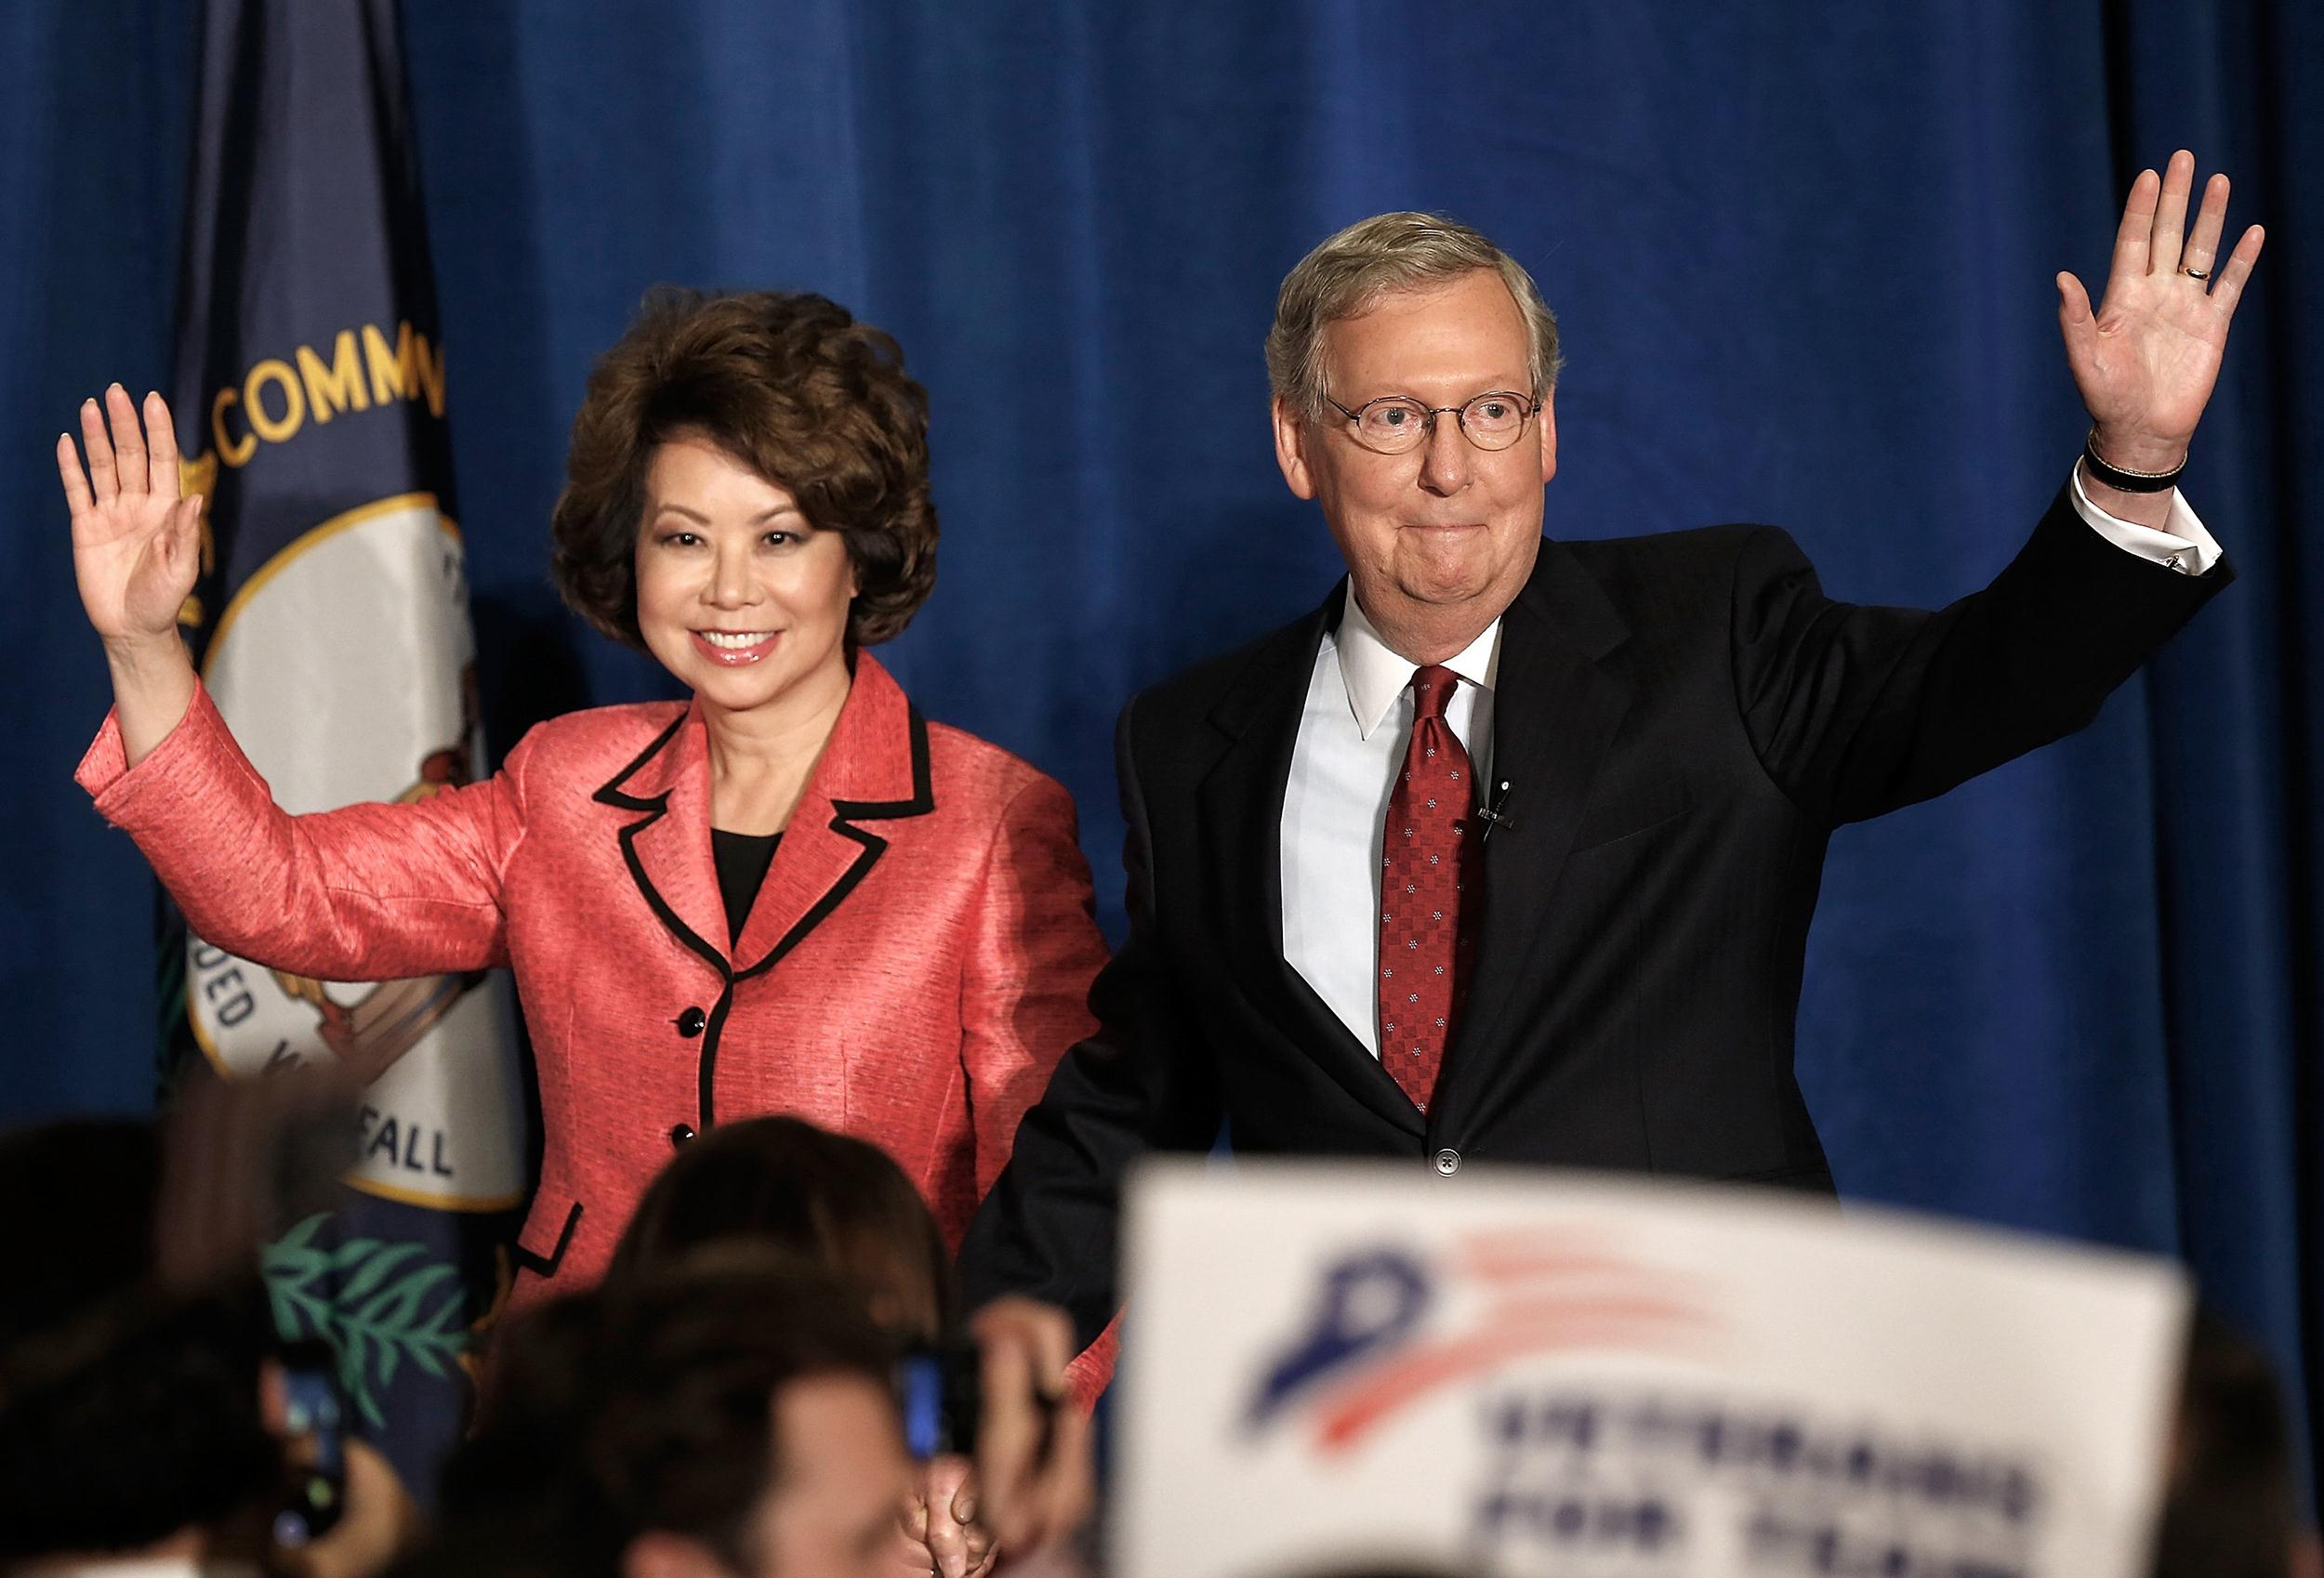 Image: U.S. Senate Republican Leader Sen. Mitch McConnell (R-KY) and his wife Elaine Chao arrive for a victory celebration following the early results of the state Republican primary